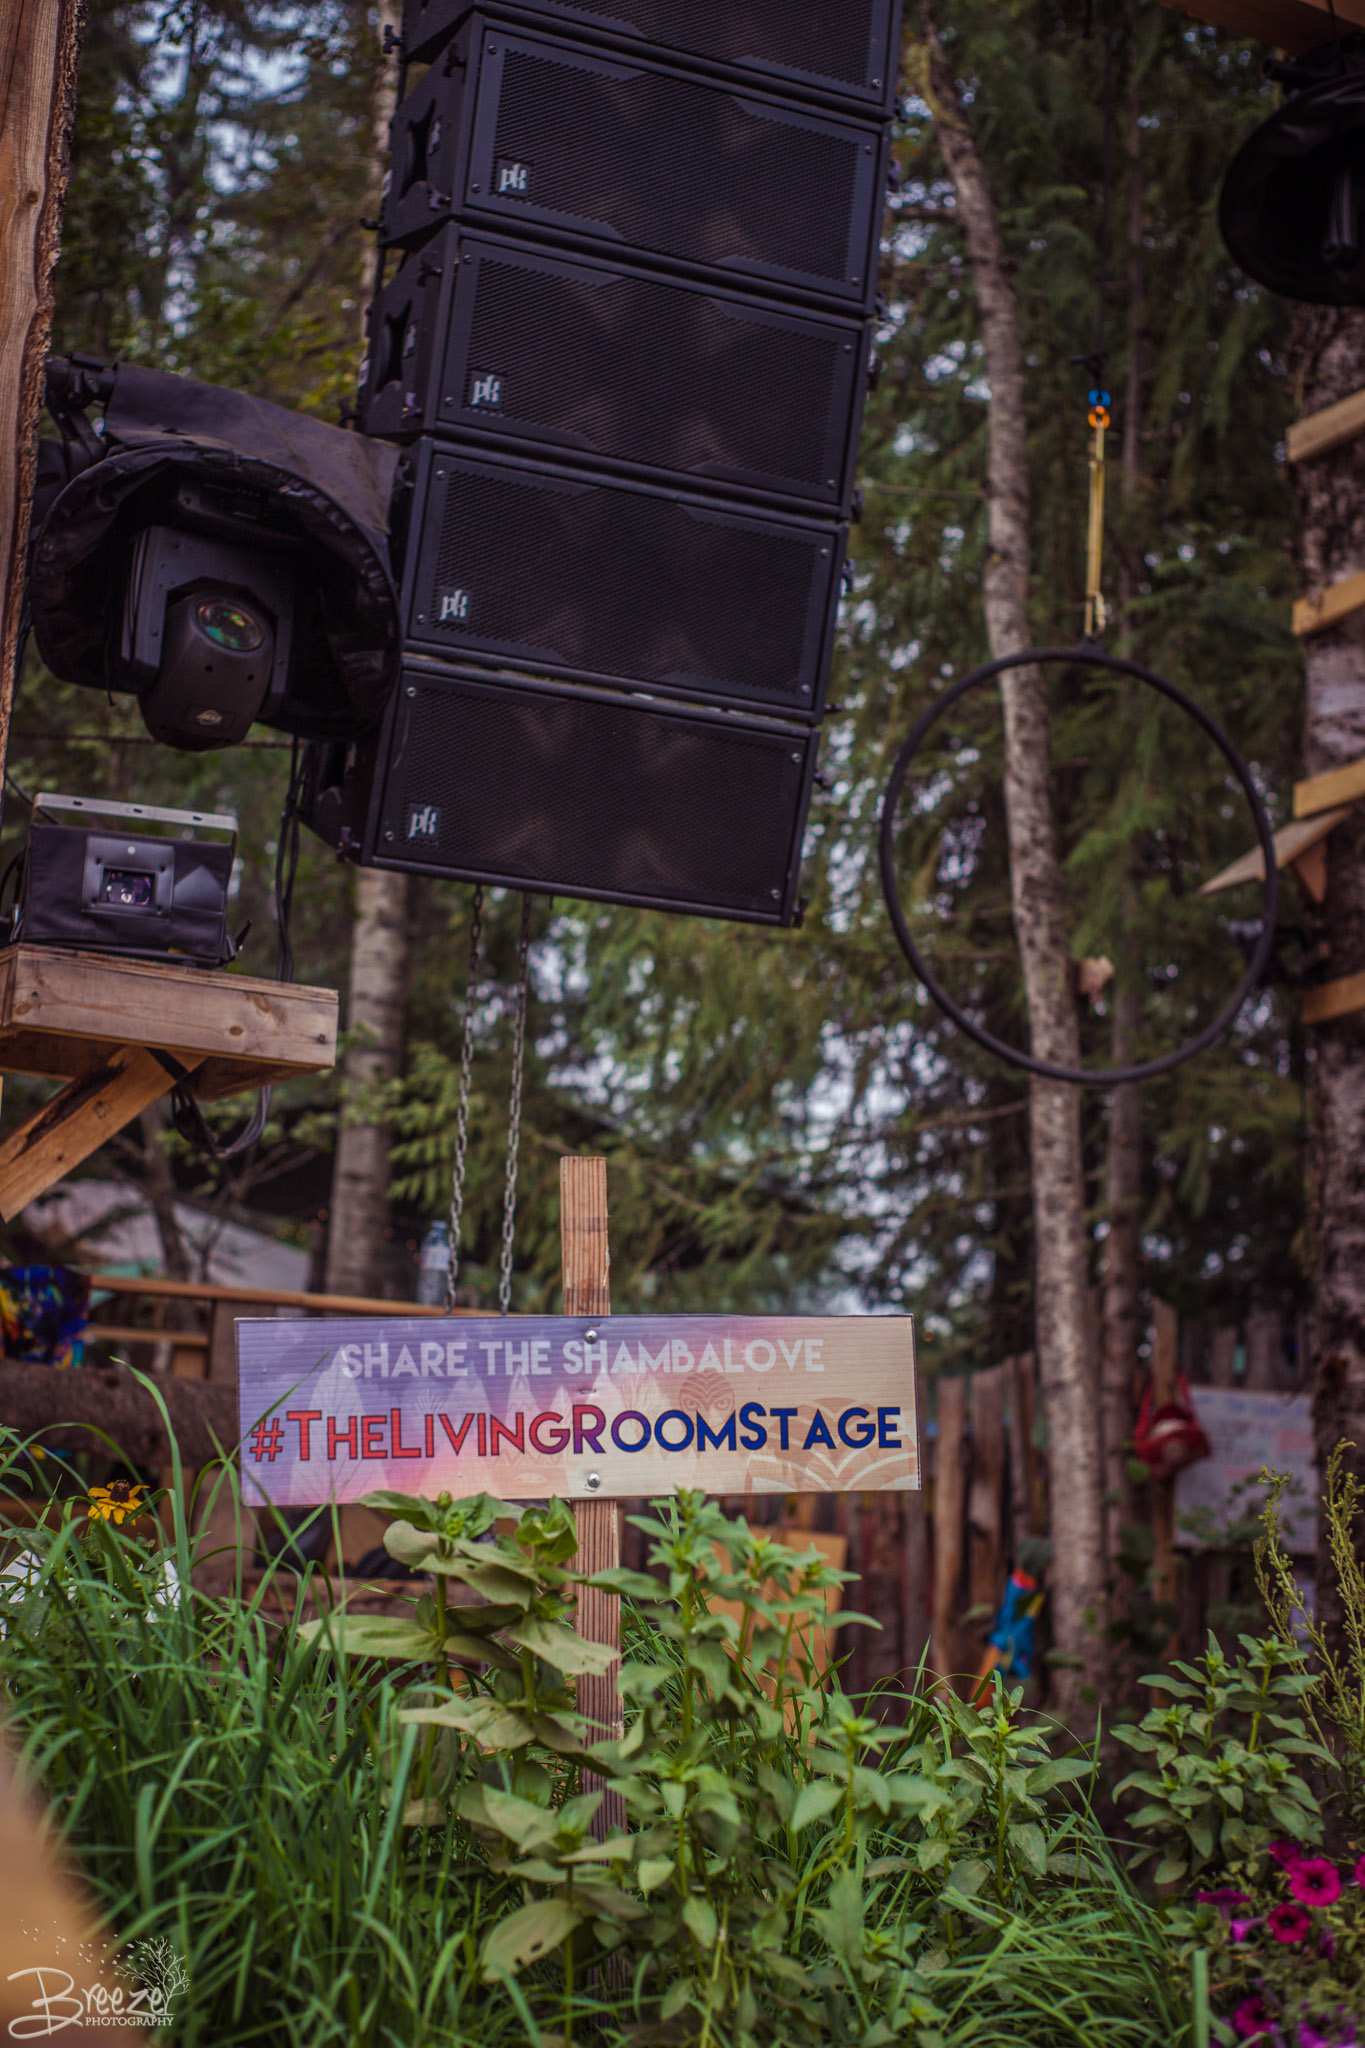 Brie'Ana Breeze Photography & Media - Shambhala 2018-1725.jpg